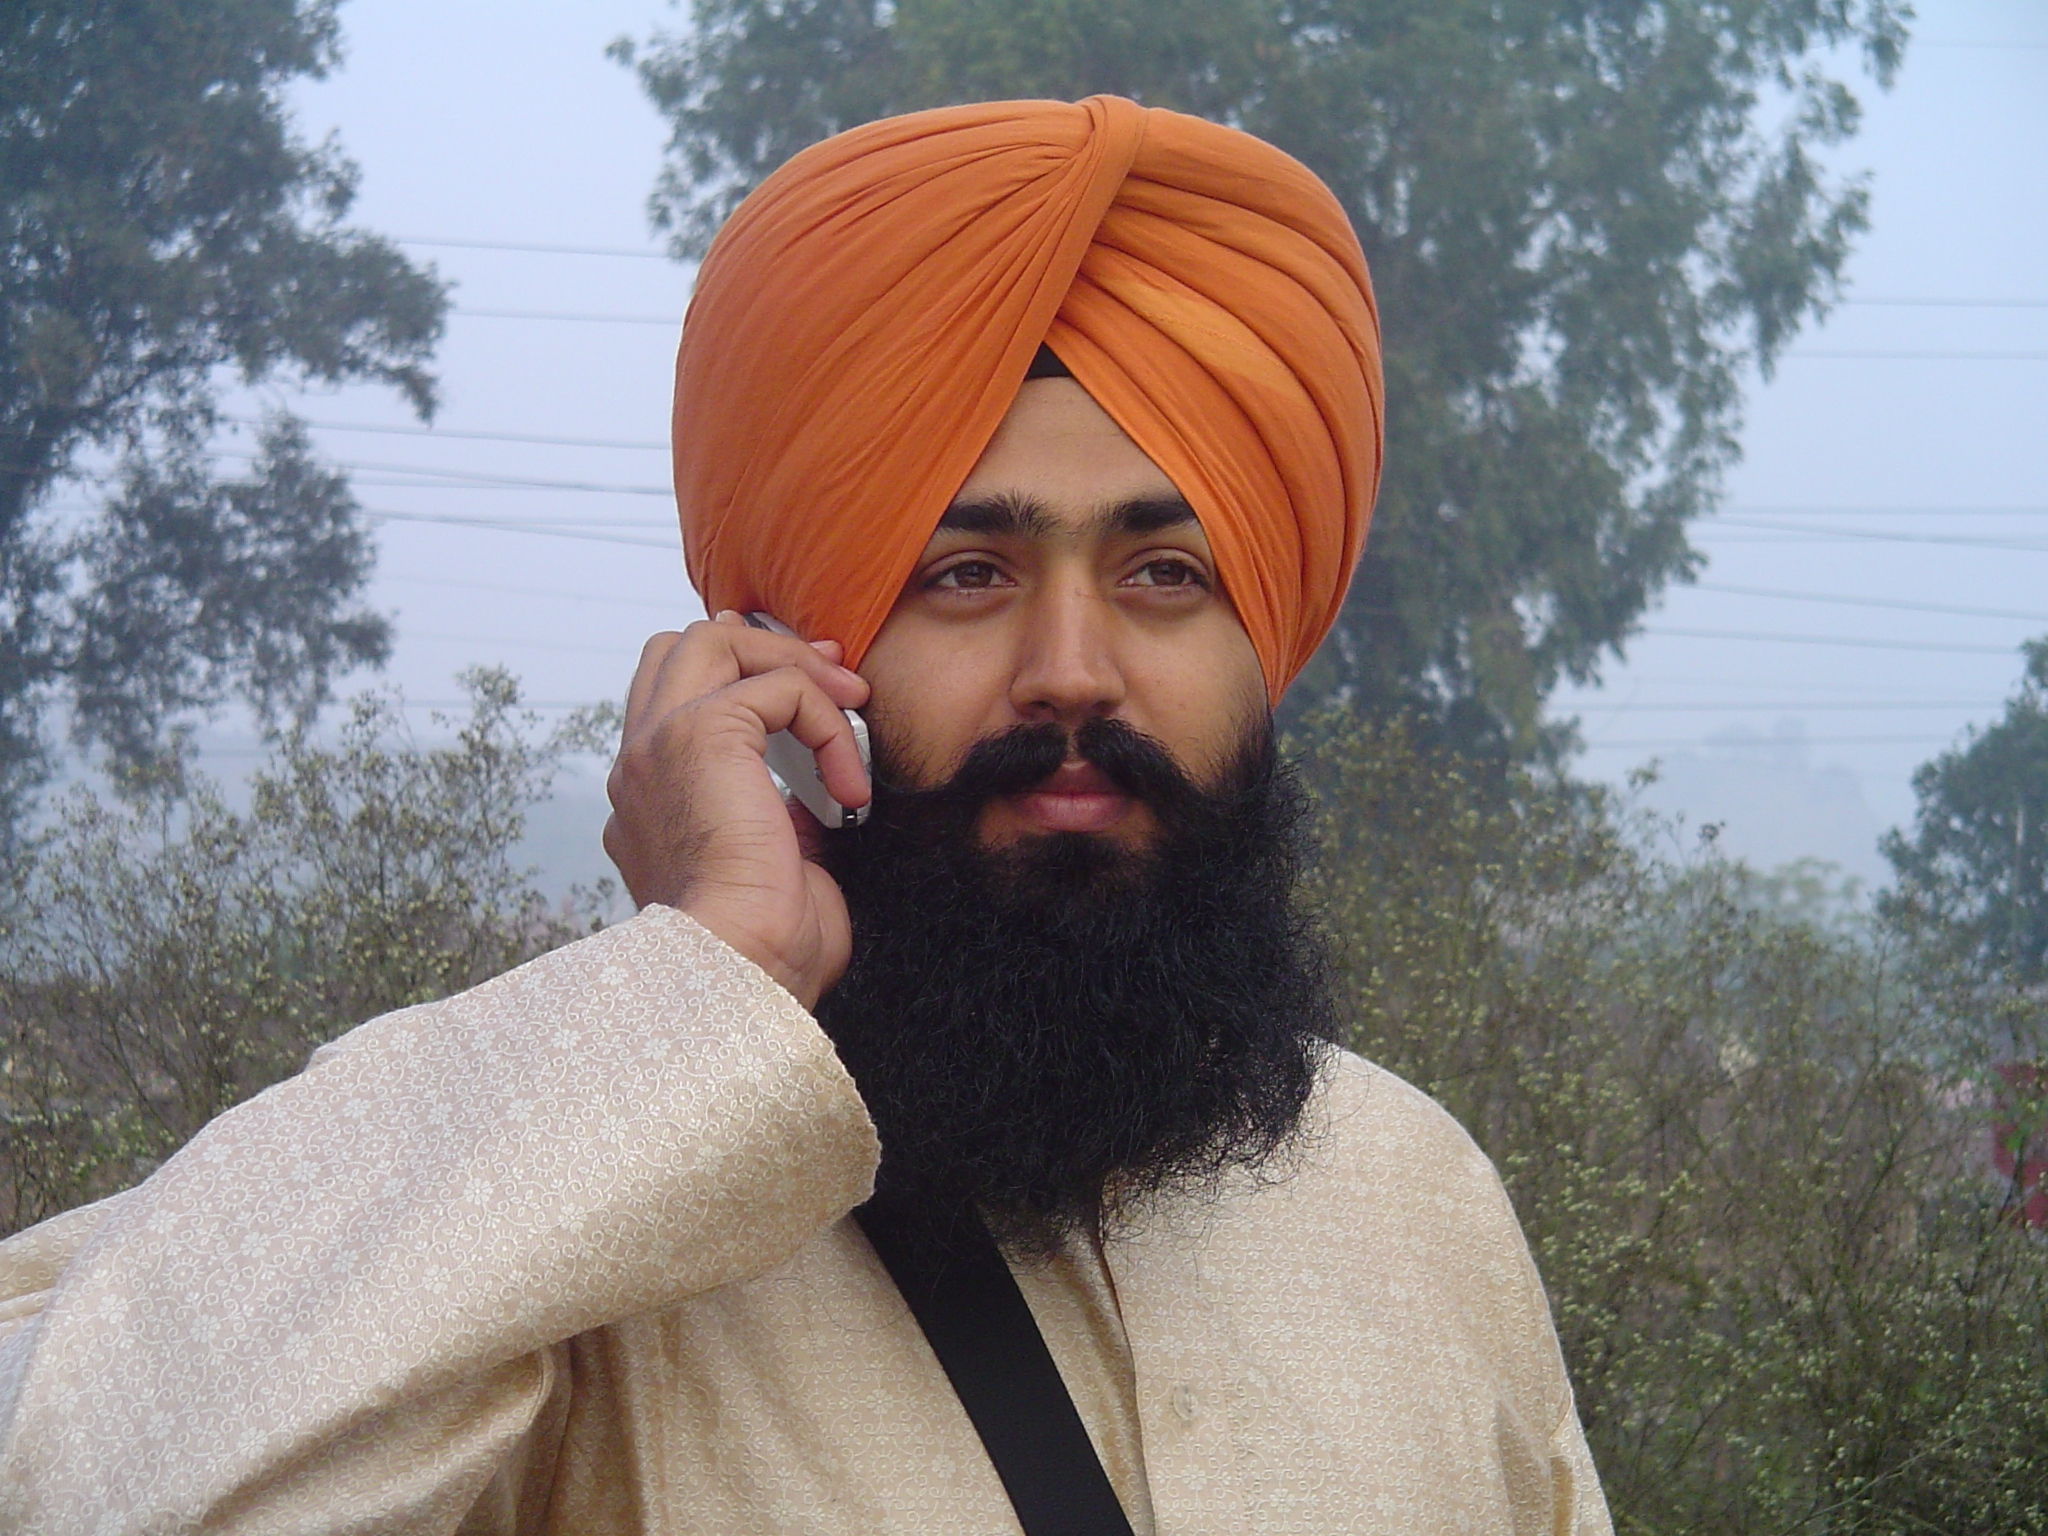 File:Sikh wearing turban.jpg - Wikipedia, the free encyclopedia